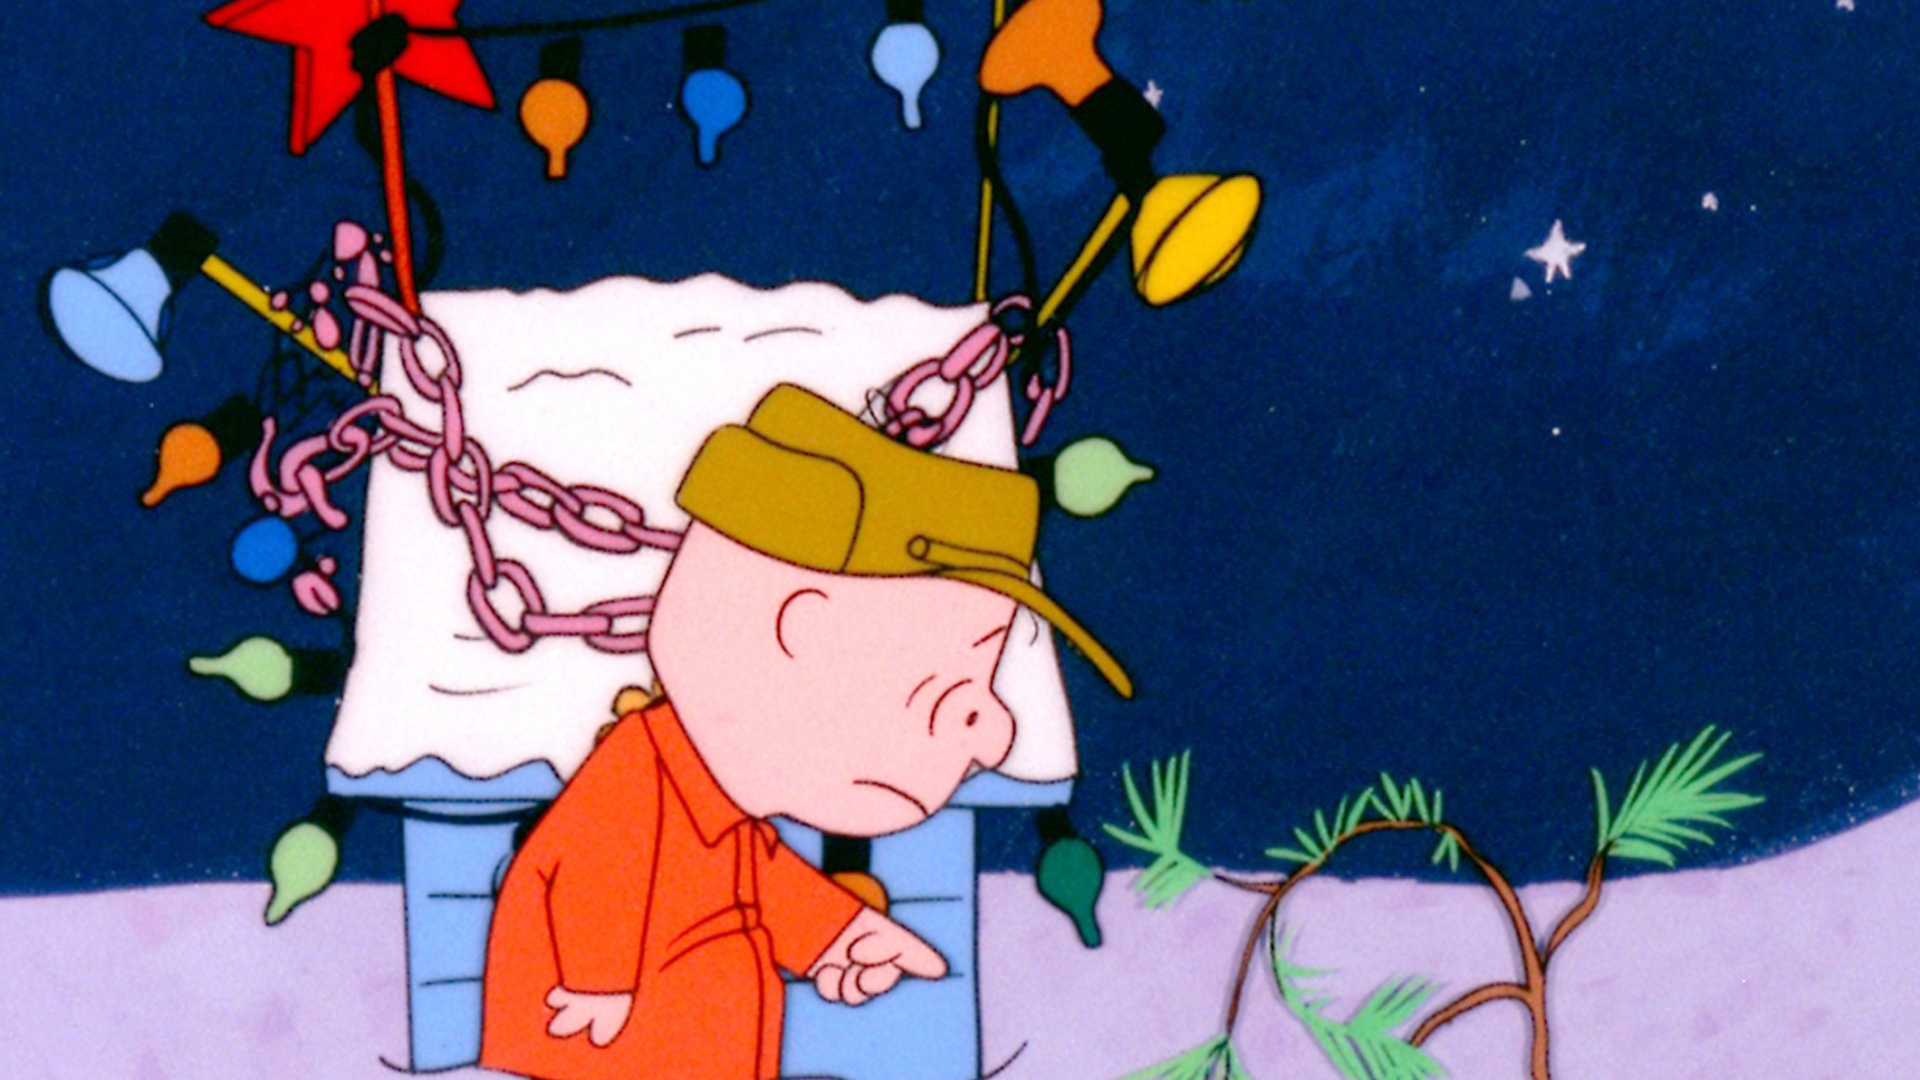 Free Download Charlie Brown Christmas Tree Wallpapers Images Amp